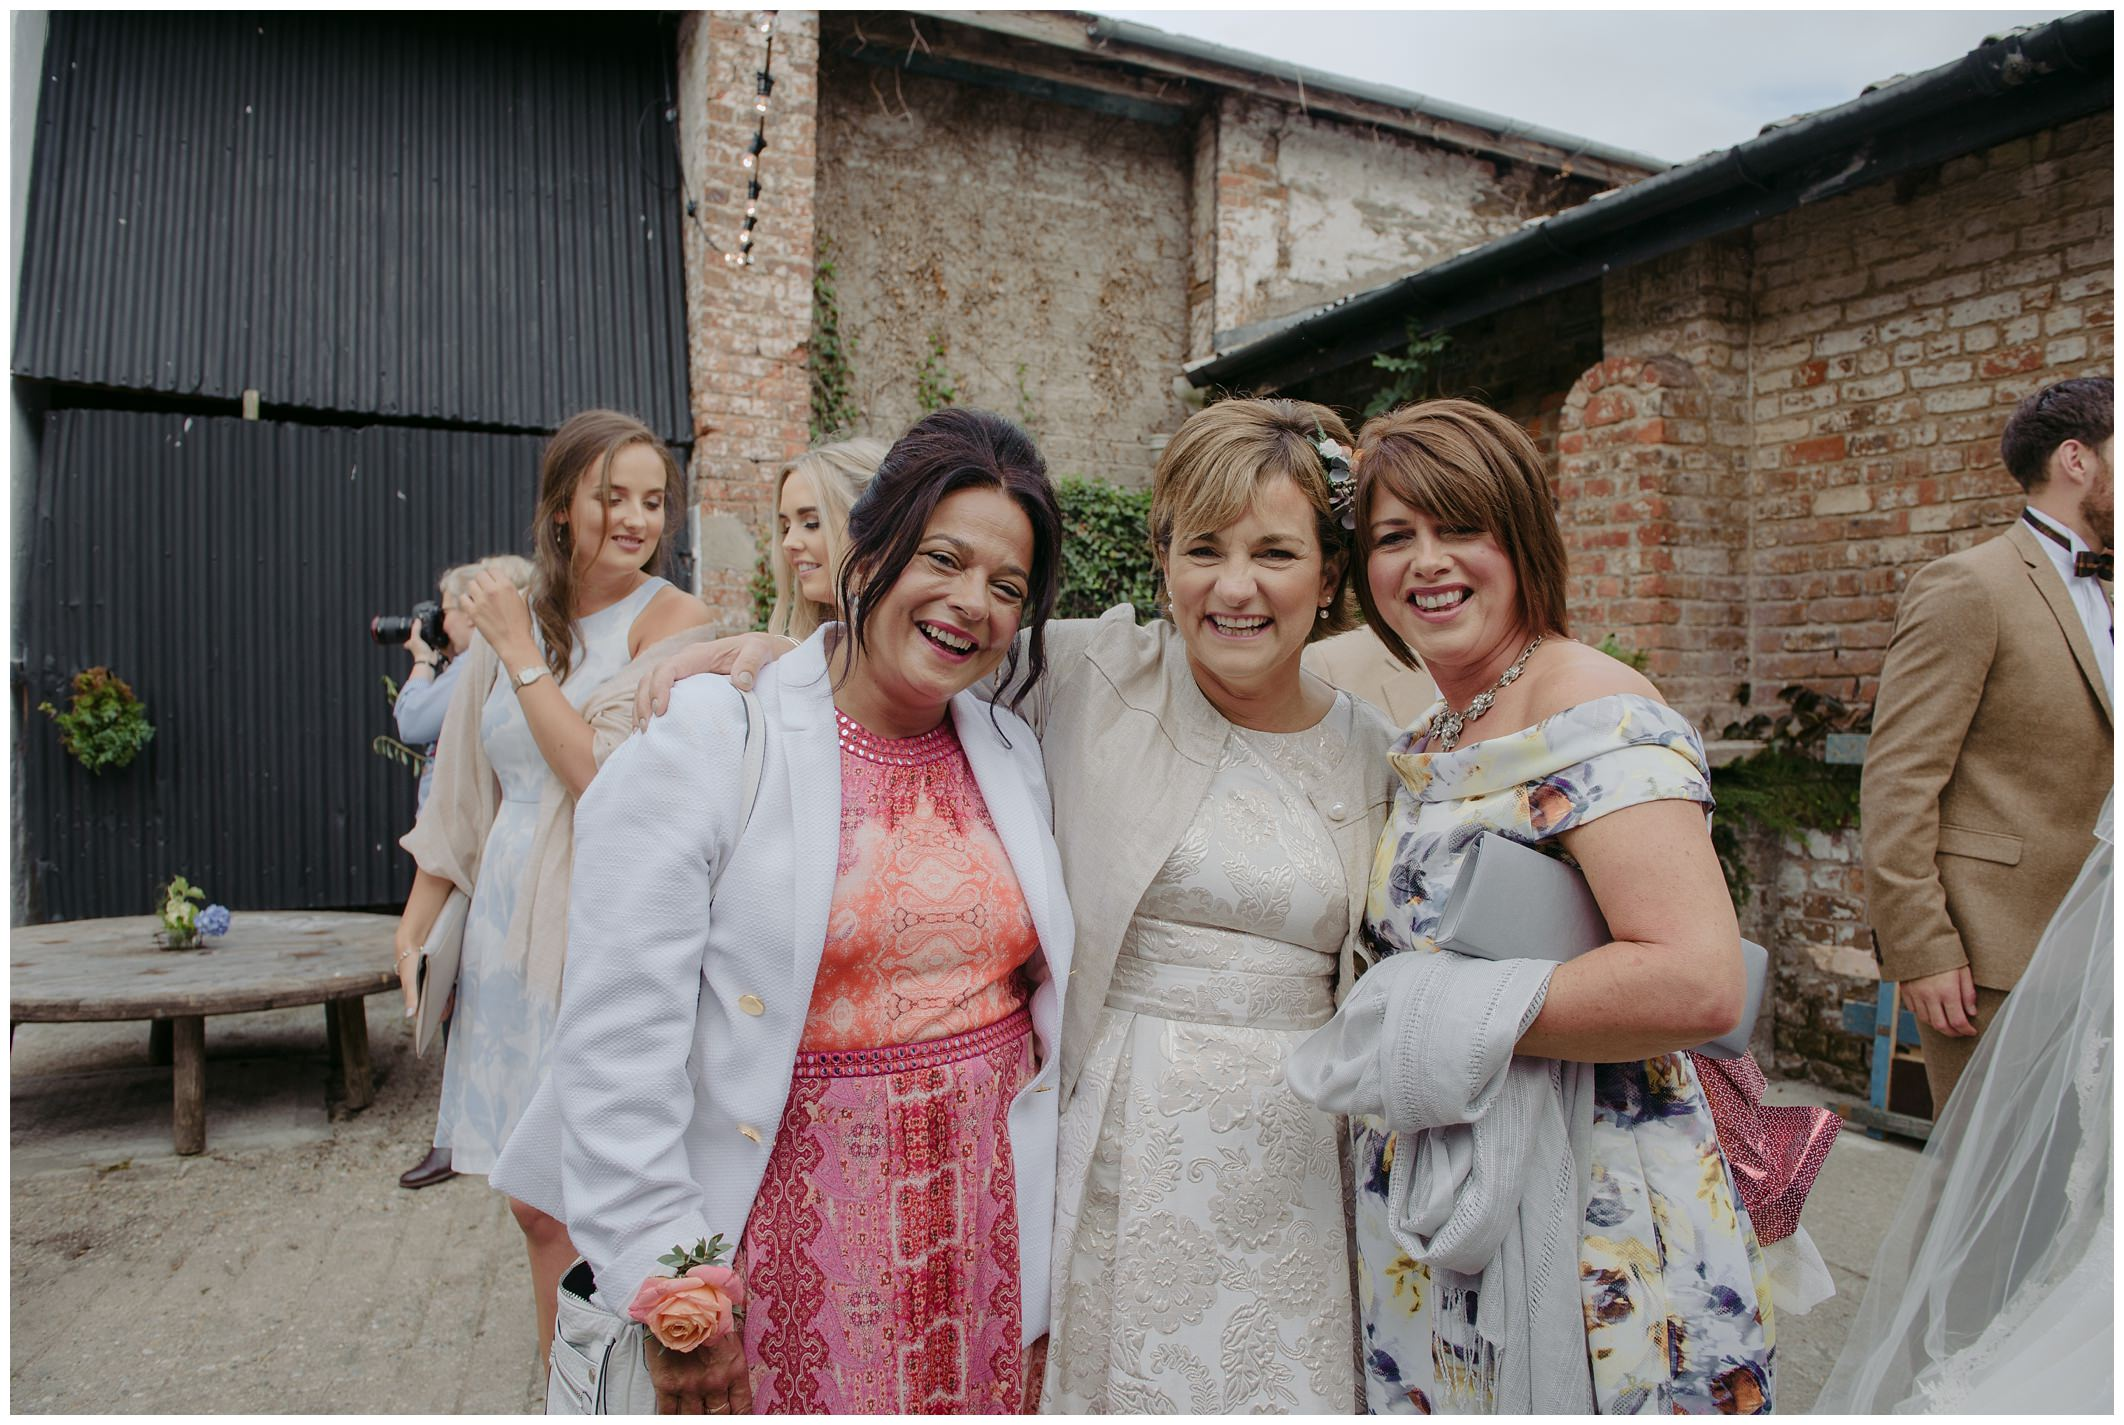 tara_neil_the_mill_alternative_quirky_wedding_jude_browne_photography_0110.jpg